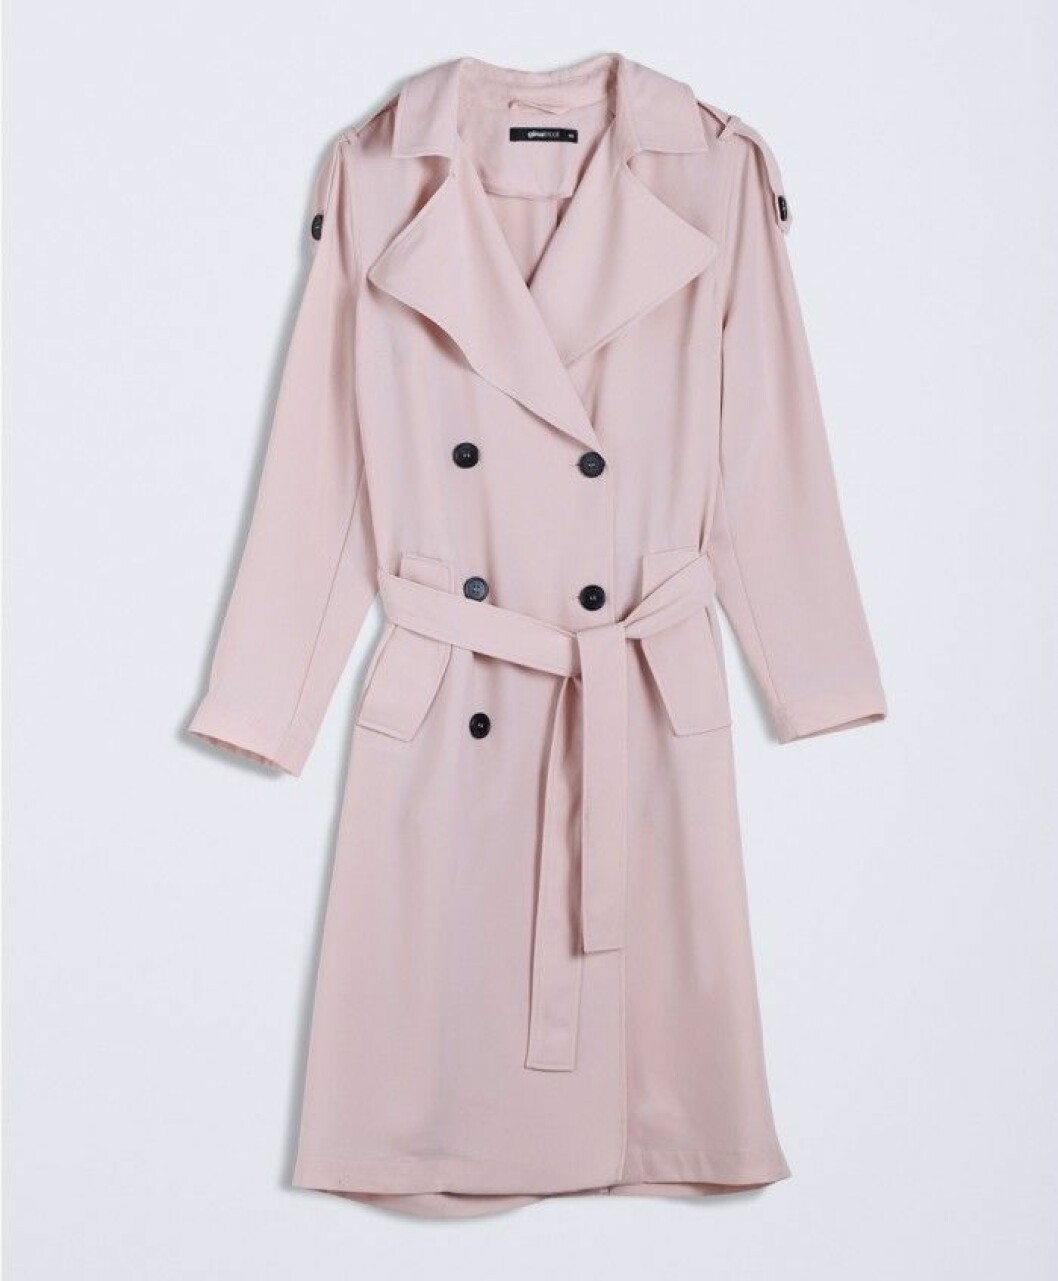 trenchcoat-gina-tricot'